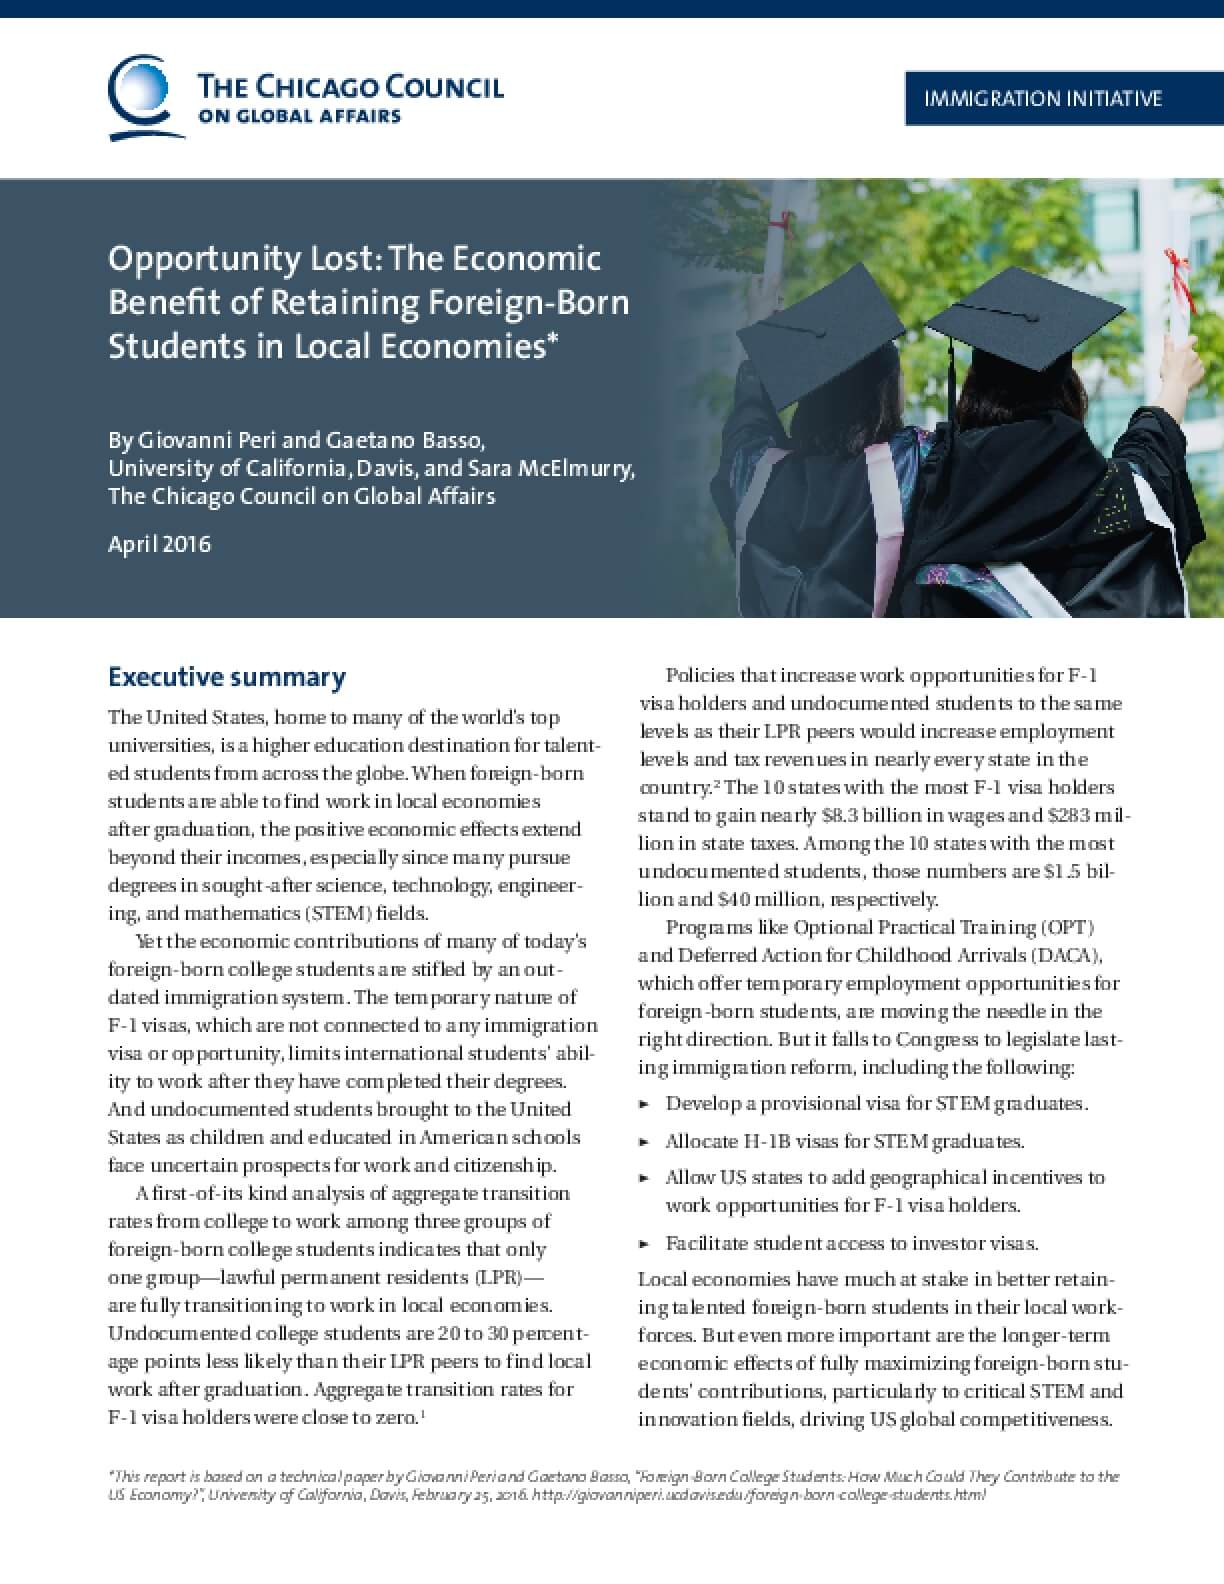 Opportunity Lost: The Economic Benefit of Retaining Foreign-Born Students in Local Economies